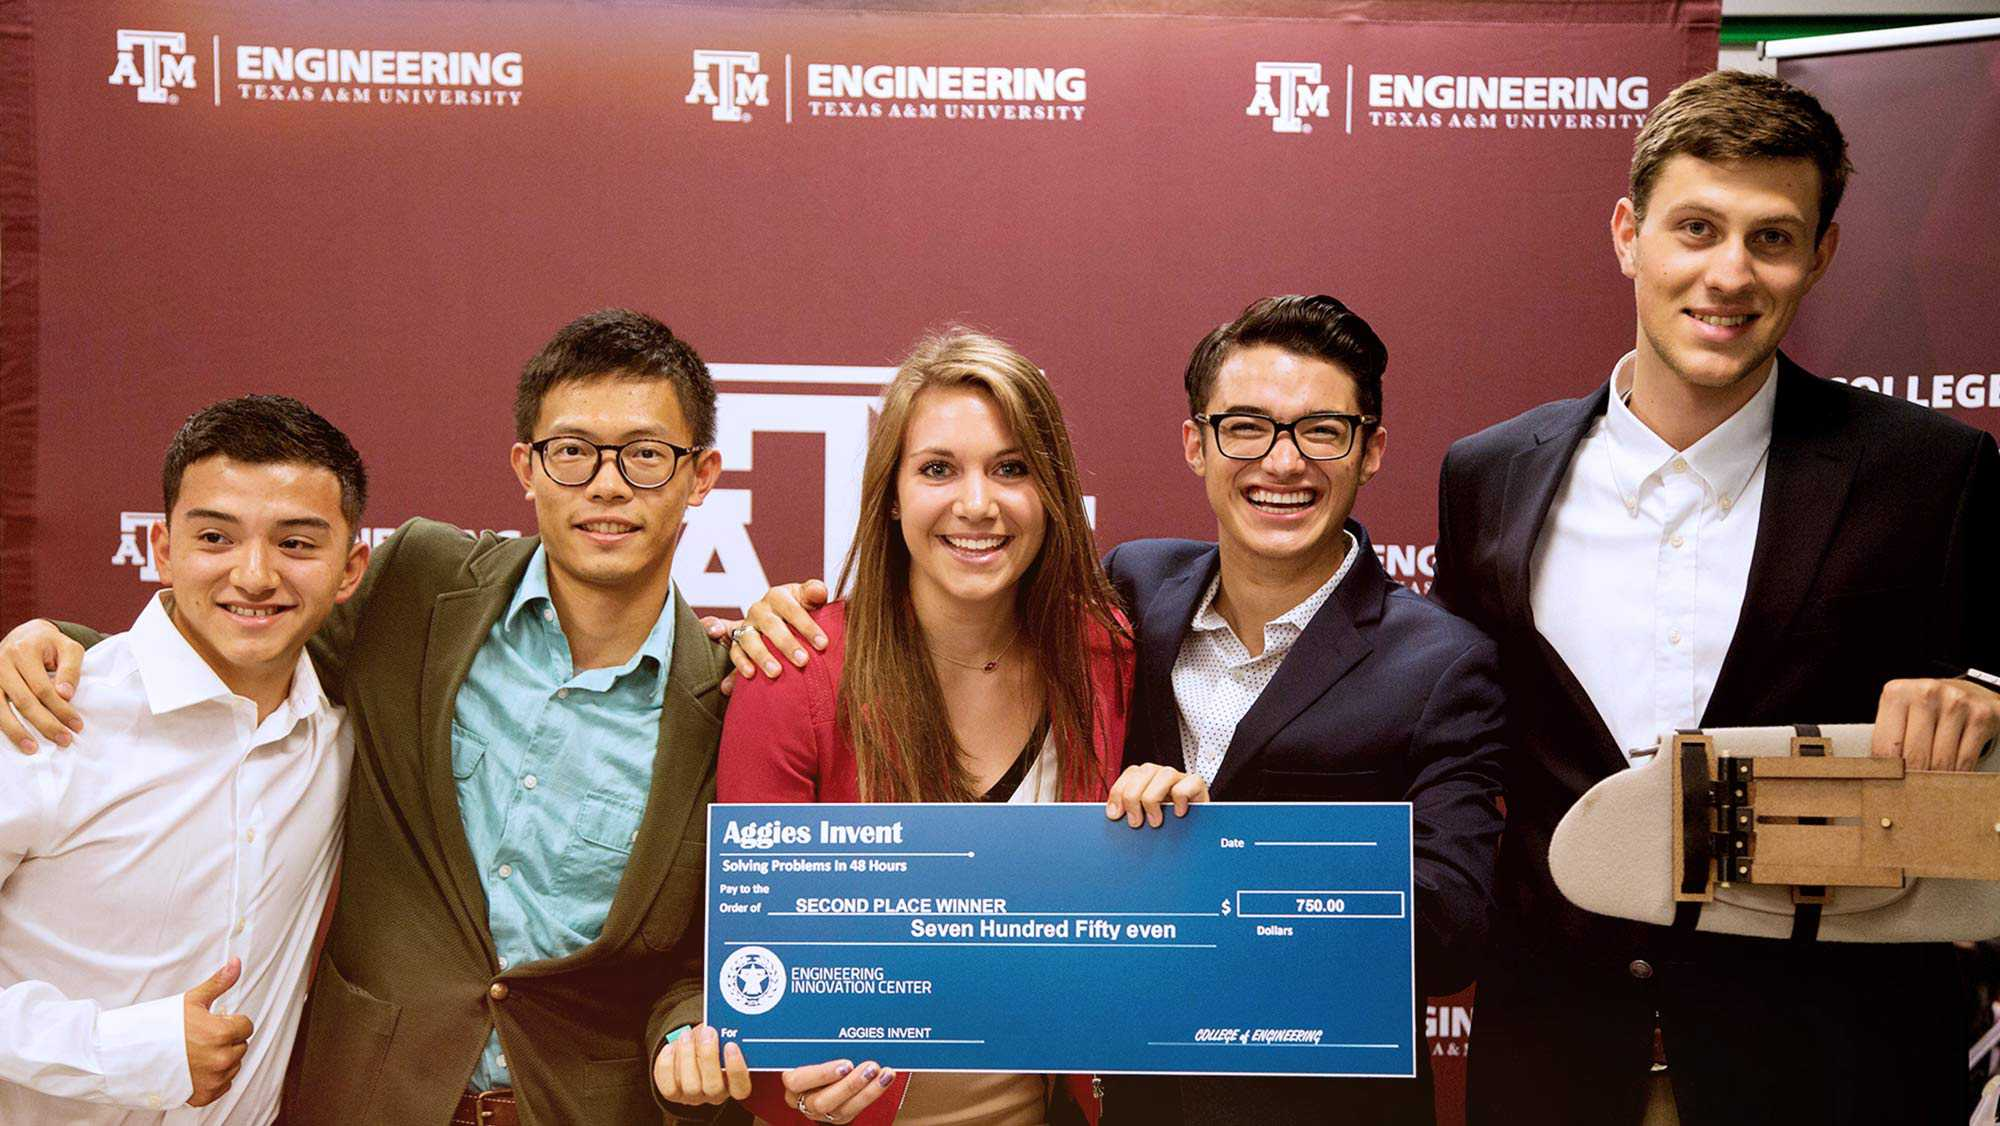 Texas A&M University Engineering 5 student holding each others shoulders holding a check Aggies Invent Solving Problems in 48 hours pay to the order of Second Place Winner Seven Hundred and Fifty Even Dollars Engineering Innovation Center